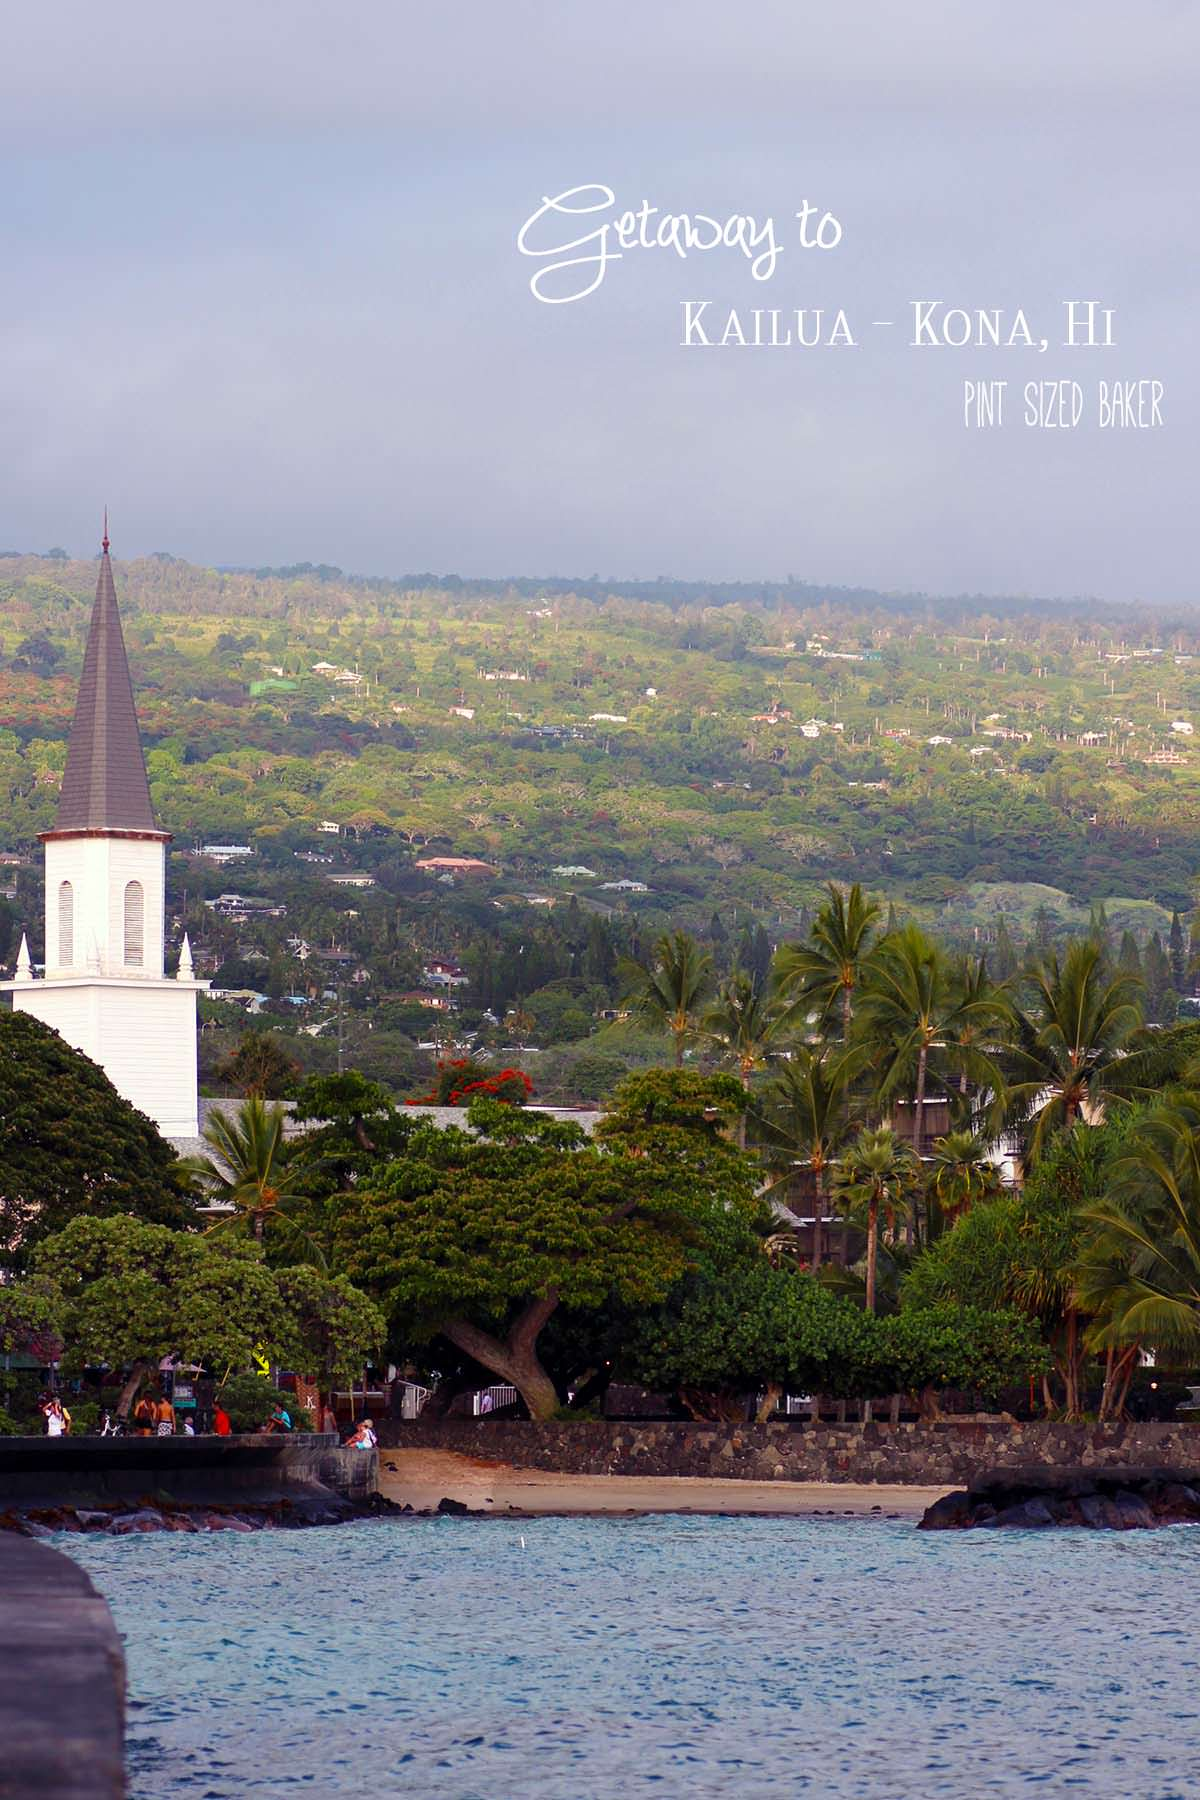 Getaway to Kailua-Kona on the Big Island of Hawaii. Where the ocean meets the mountains and the stars are amazing!